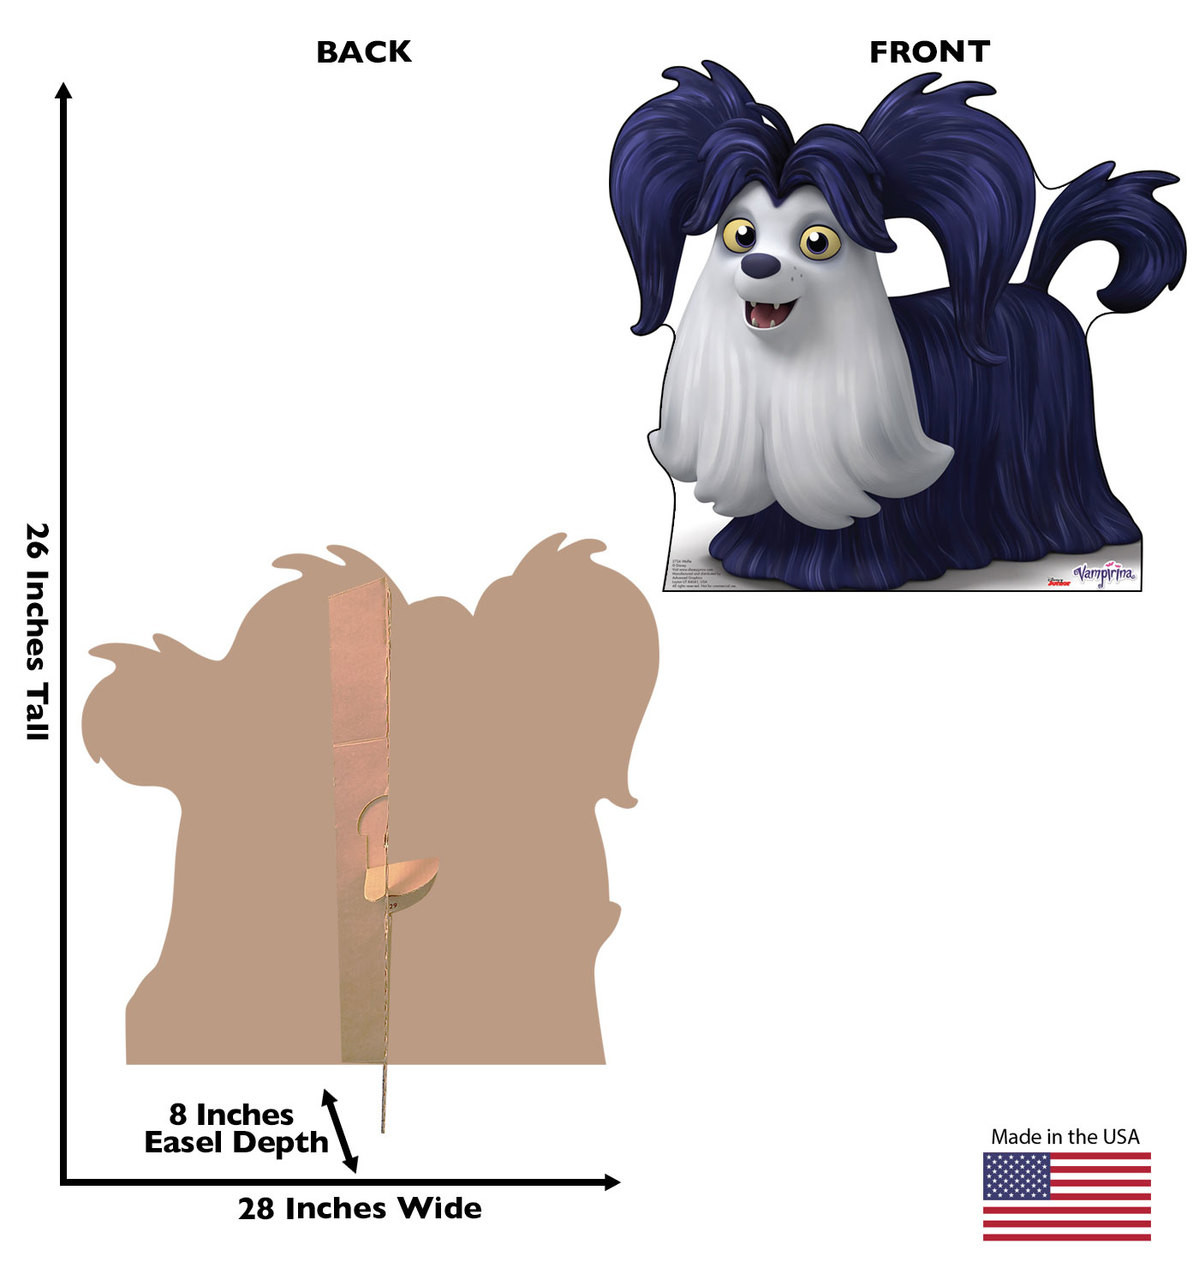 Wolfie Life-size cardboard standee back and front with dimensions.